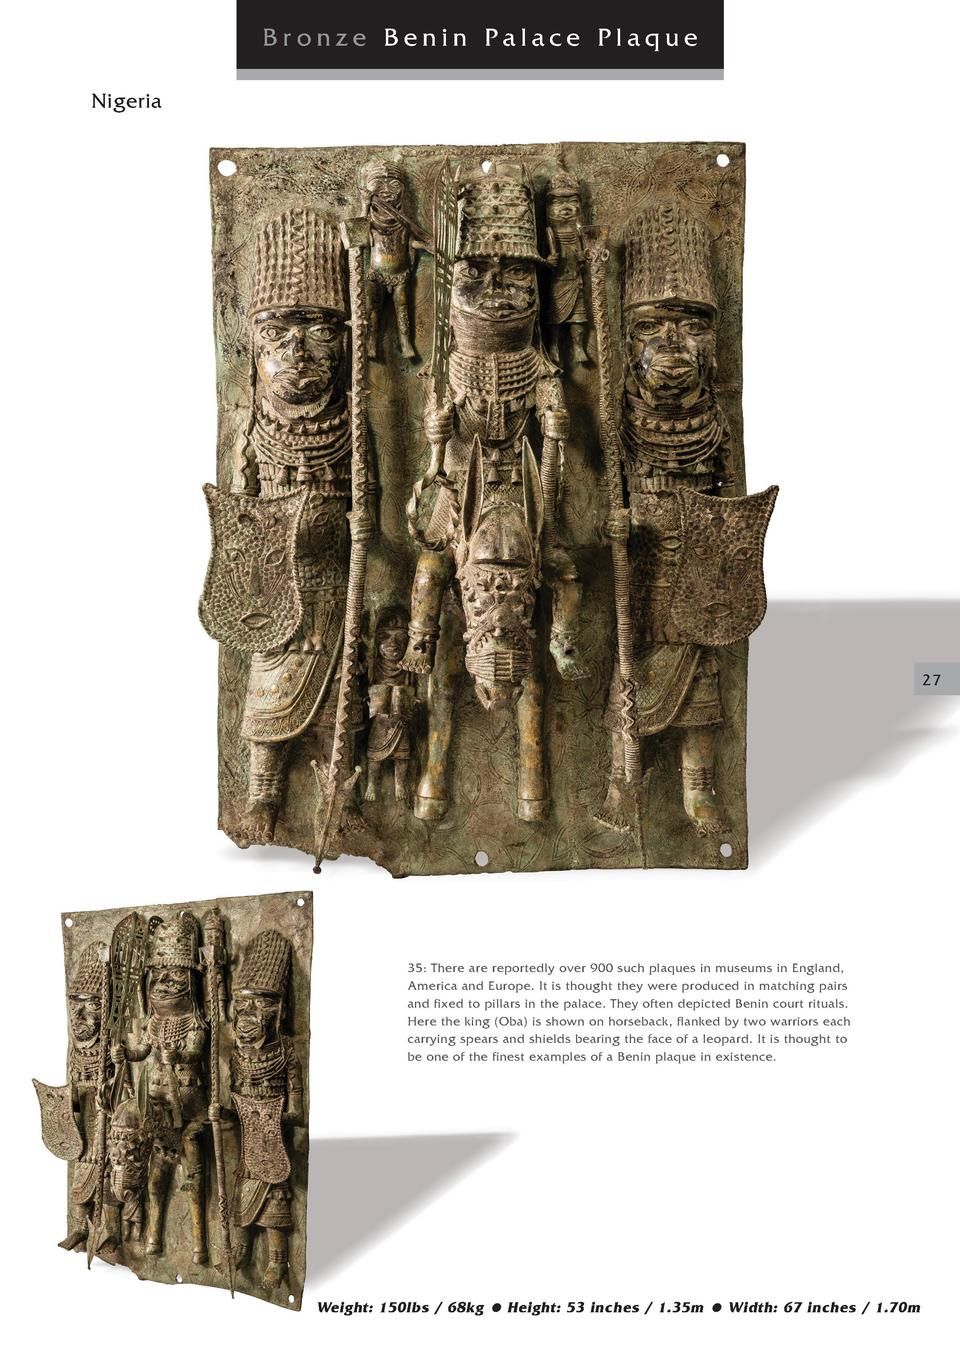 Bronze Benin Palace Plaque Nigeria  27  35  There are reportedly over 900 such plaques in museums in England, America and ...